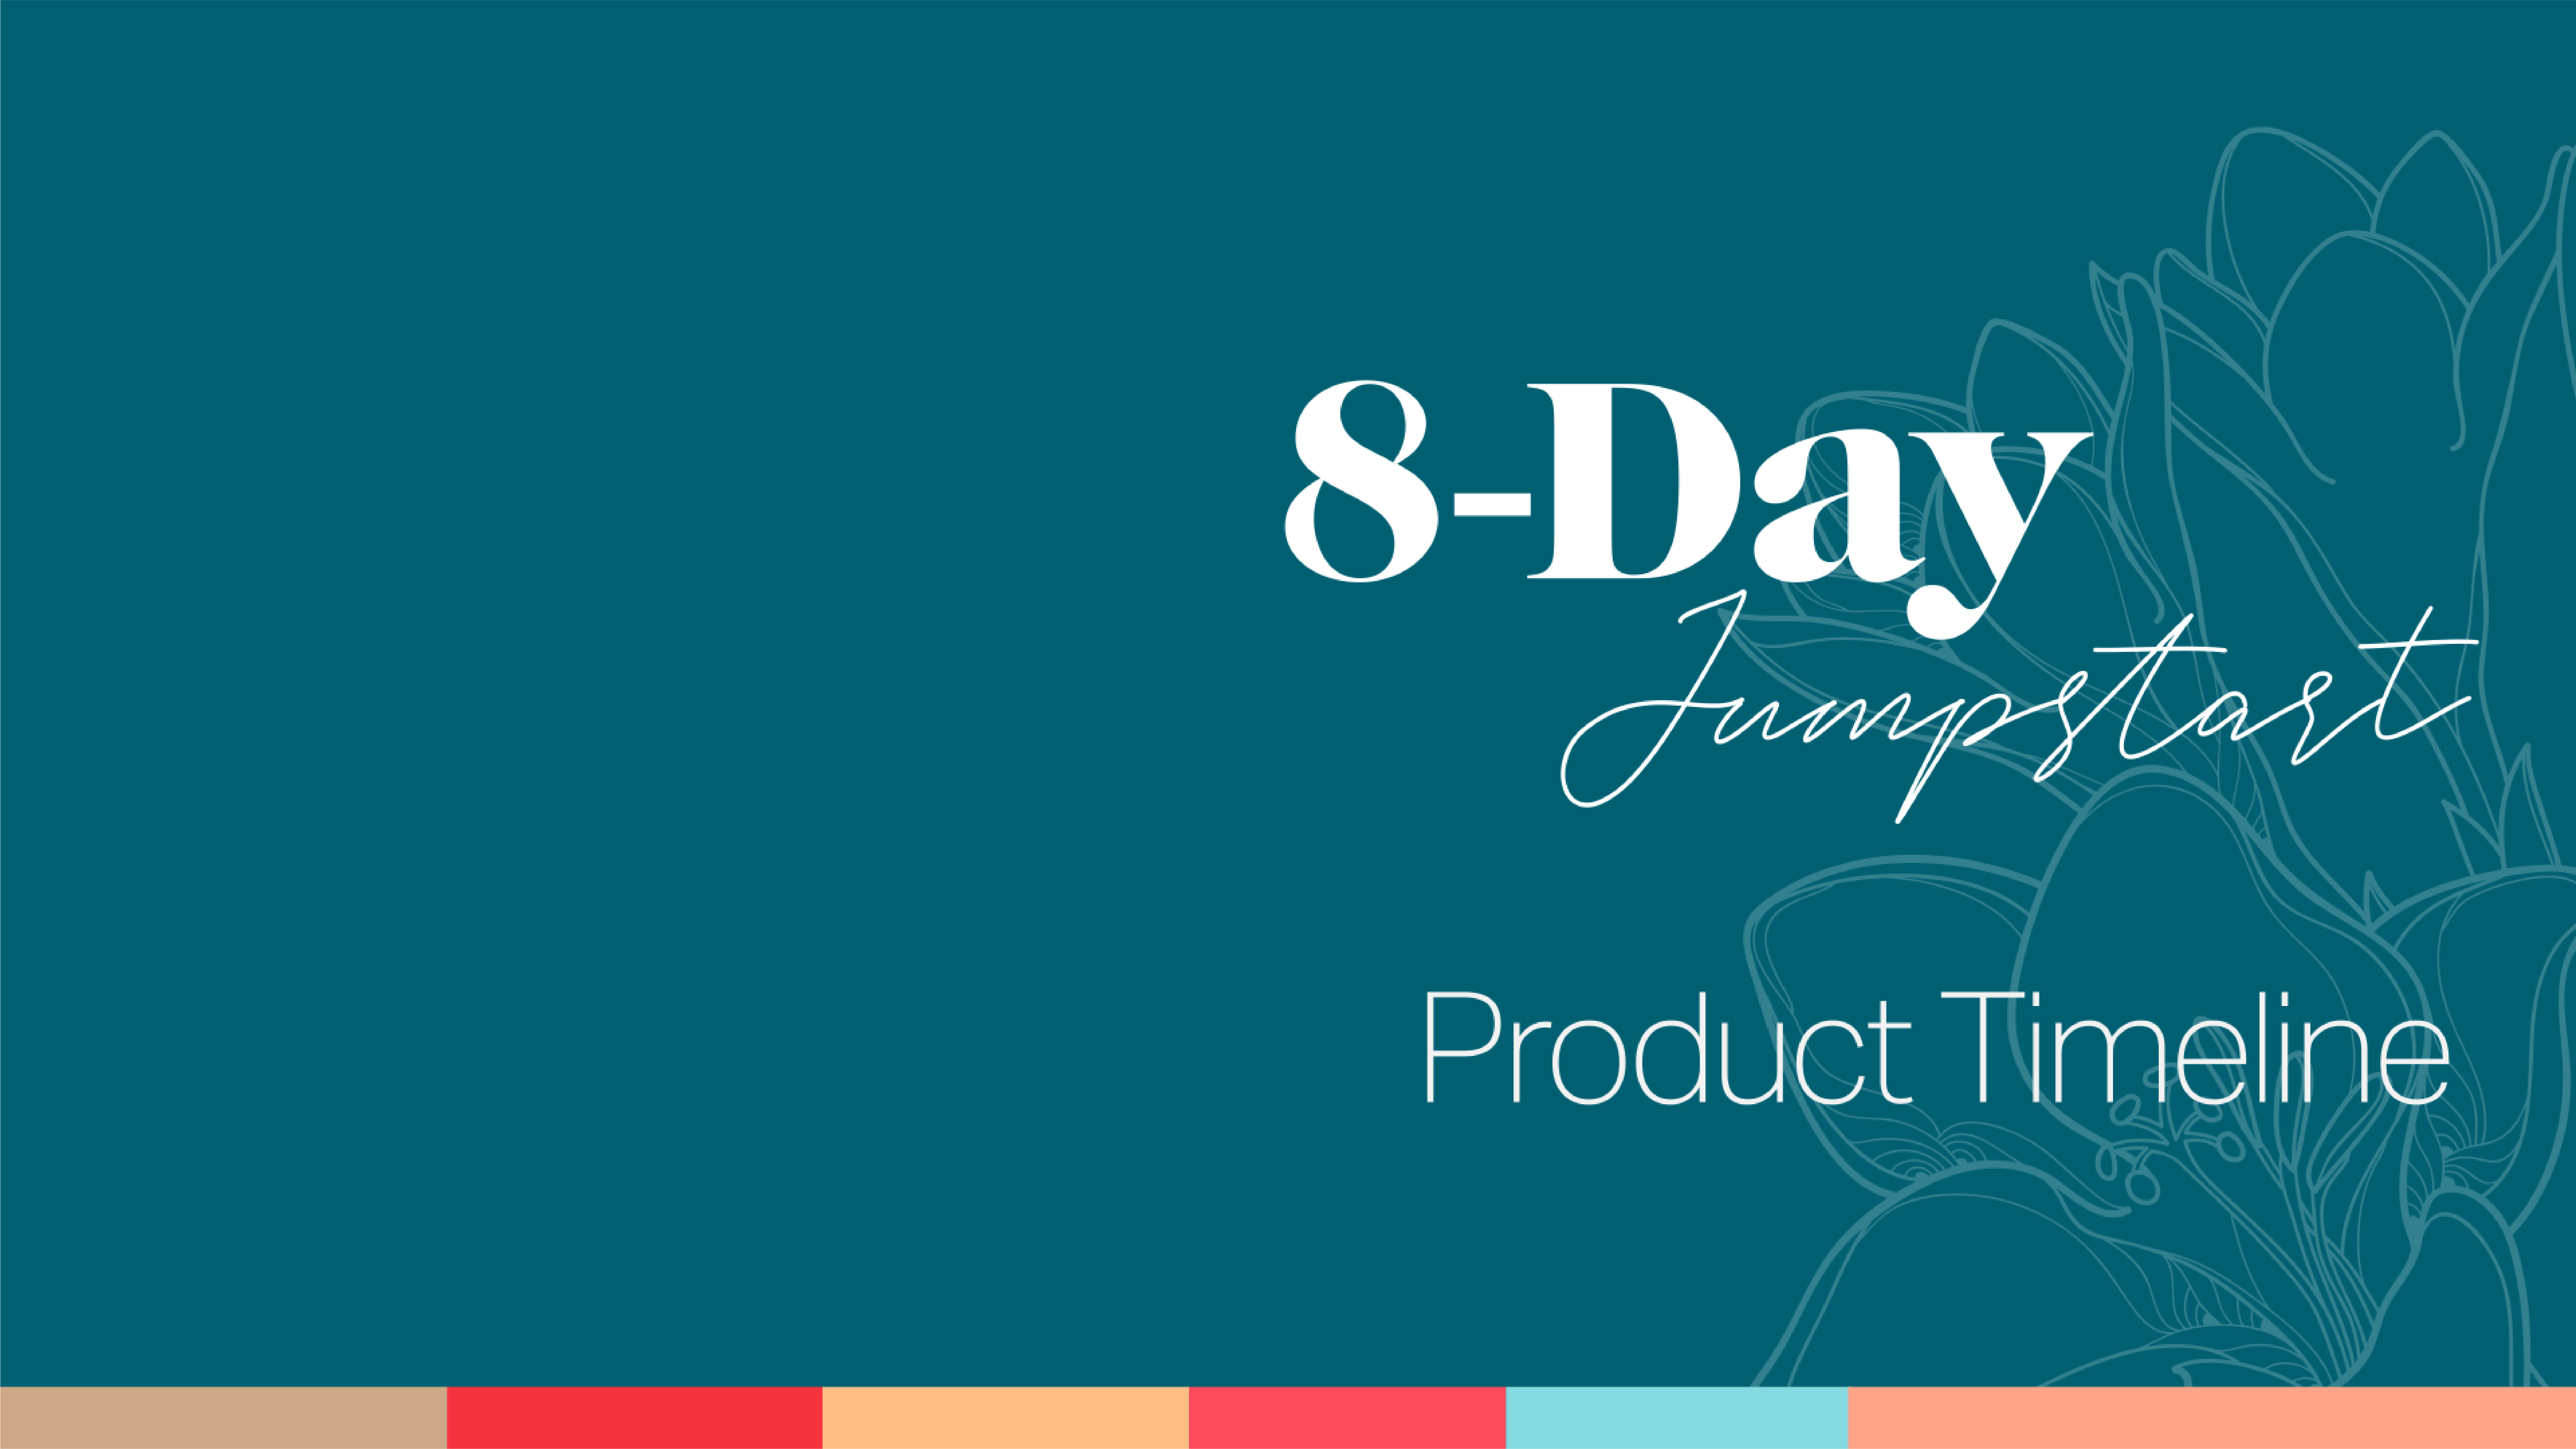 8-Day Product Timeline